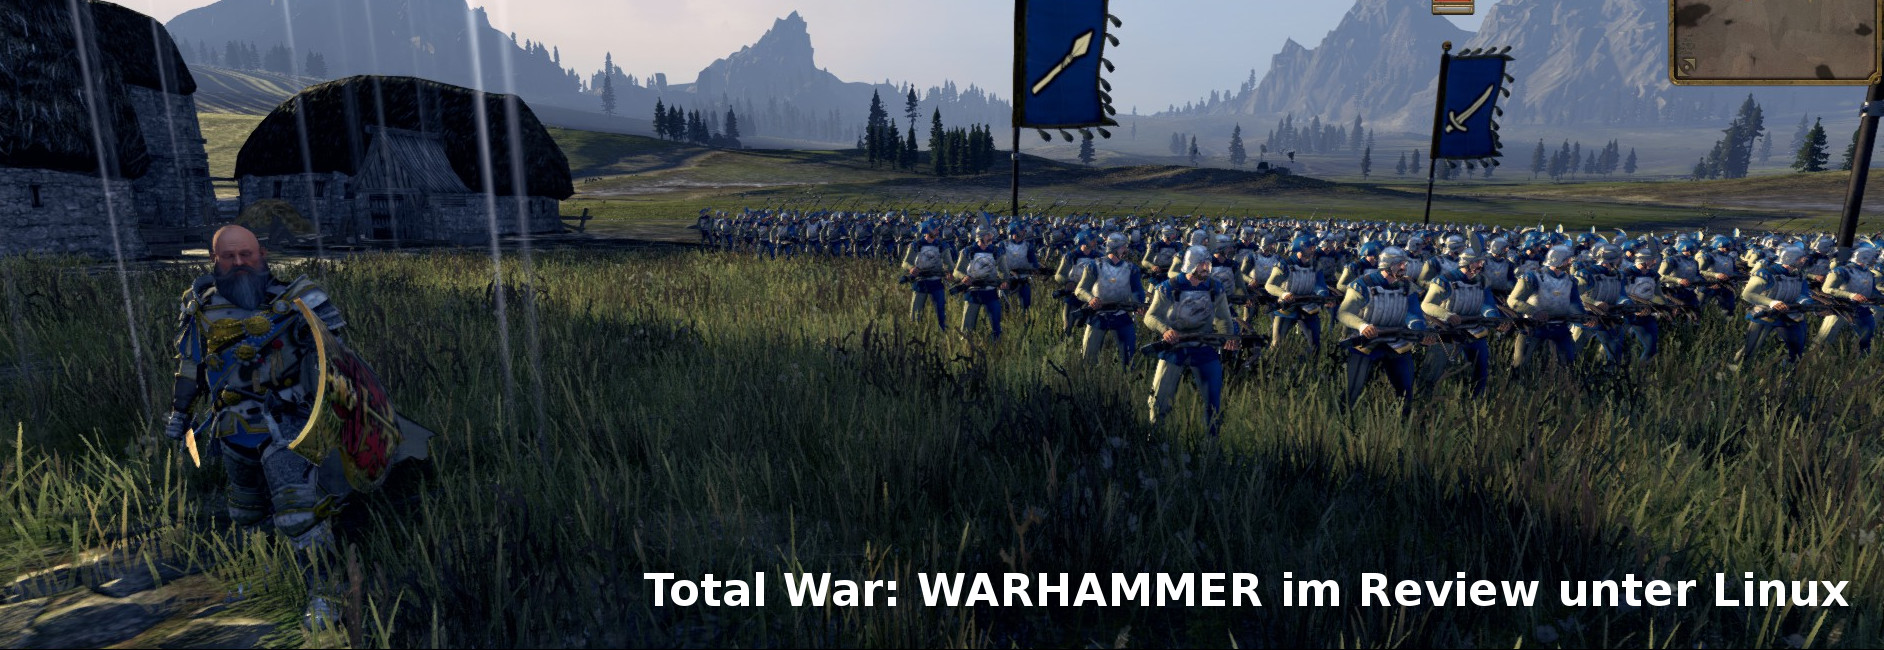 https://www.holarse-linuxgaming.de/sites/default/files/2017-01-22-1/totalwar_warhammer_teaser.jpg